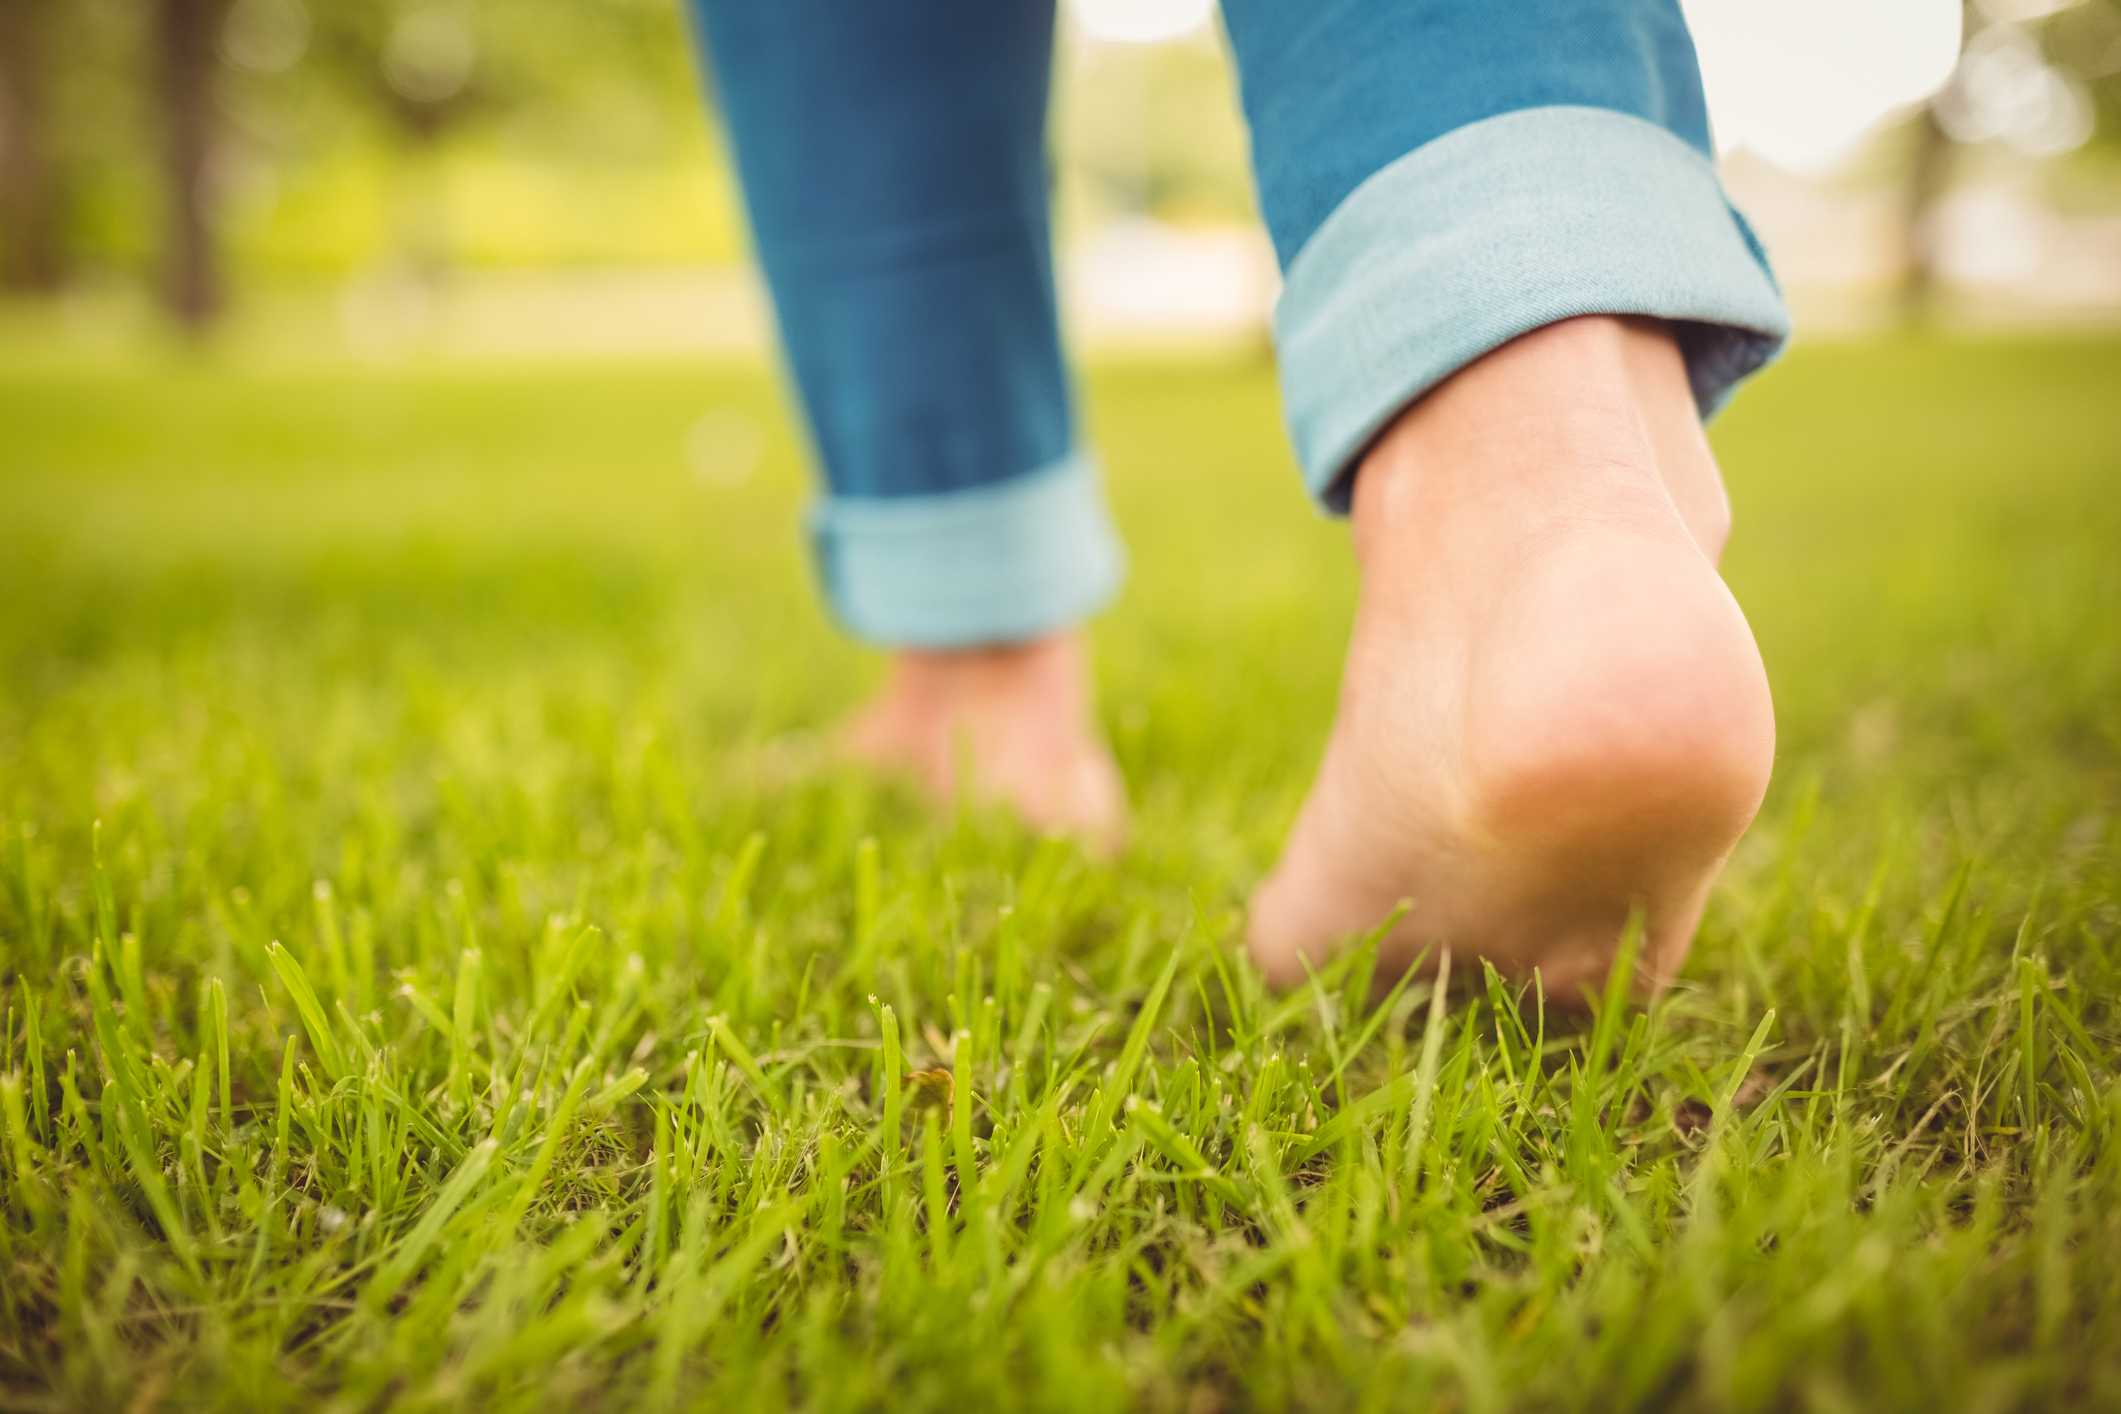 Symptoms Of Foot Damage And Common Foot Problems